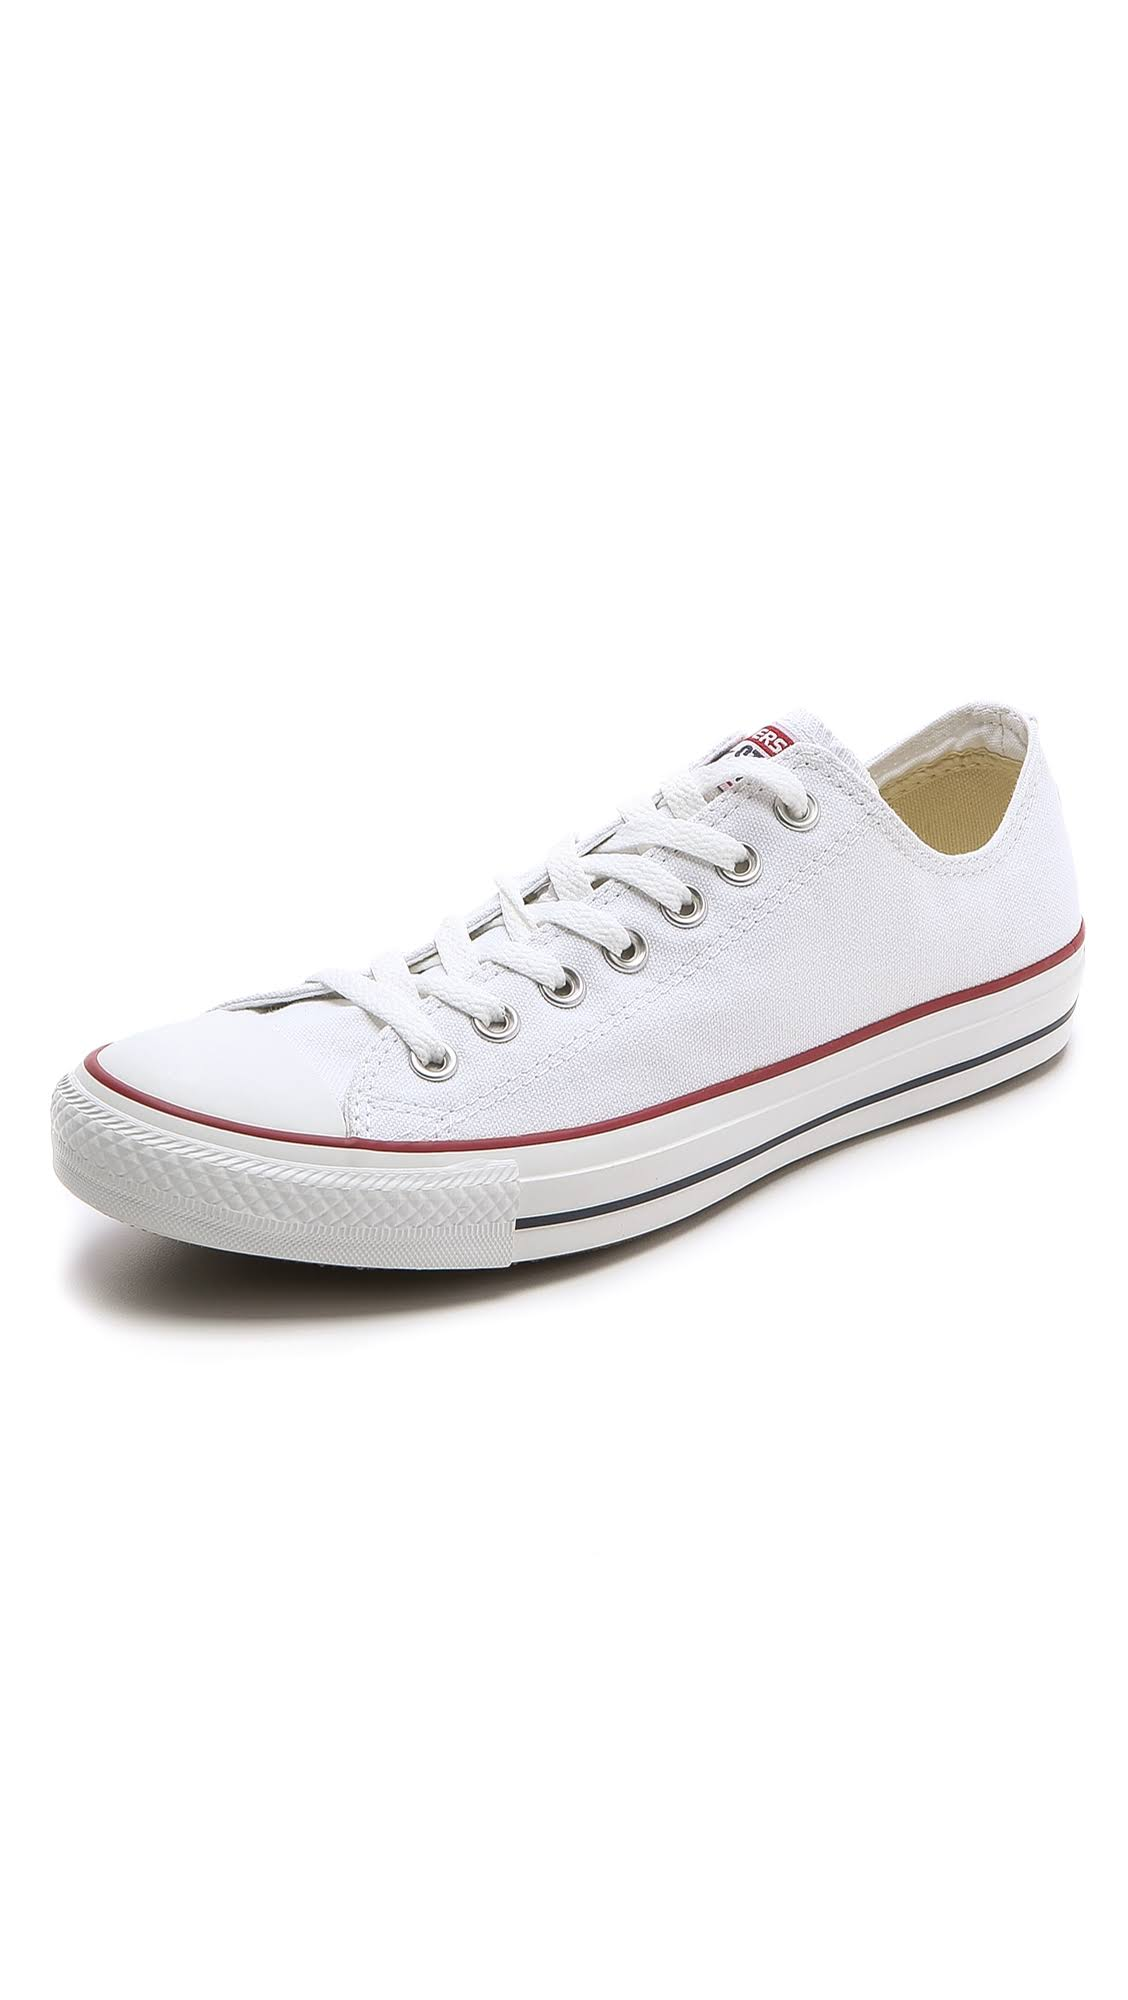 Chuck Sneakers 9 Optical White Converse Taylor All Star RwdBAggq